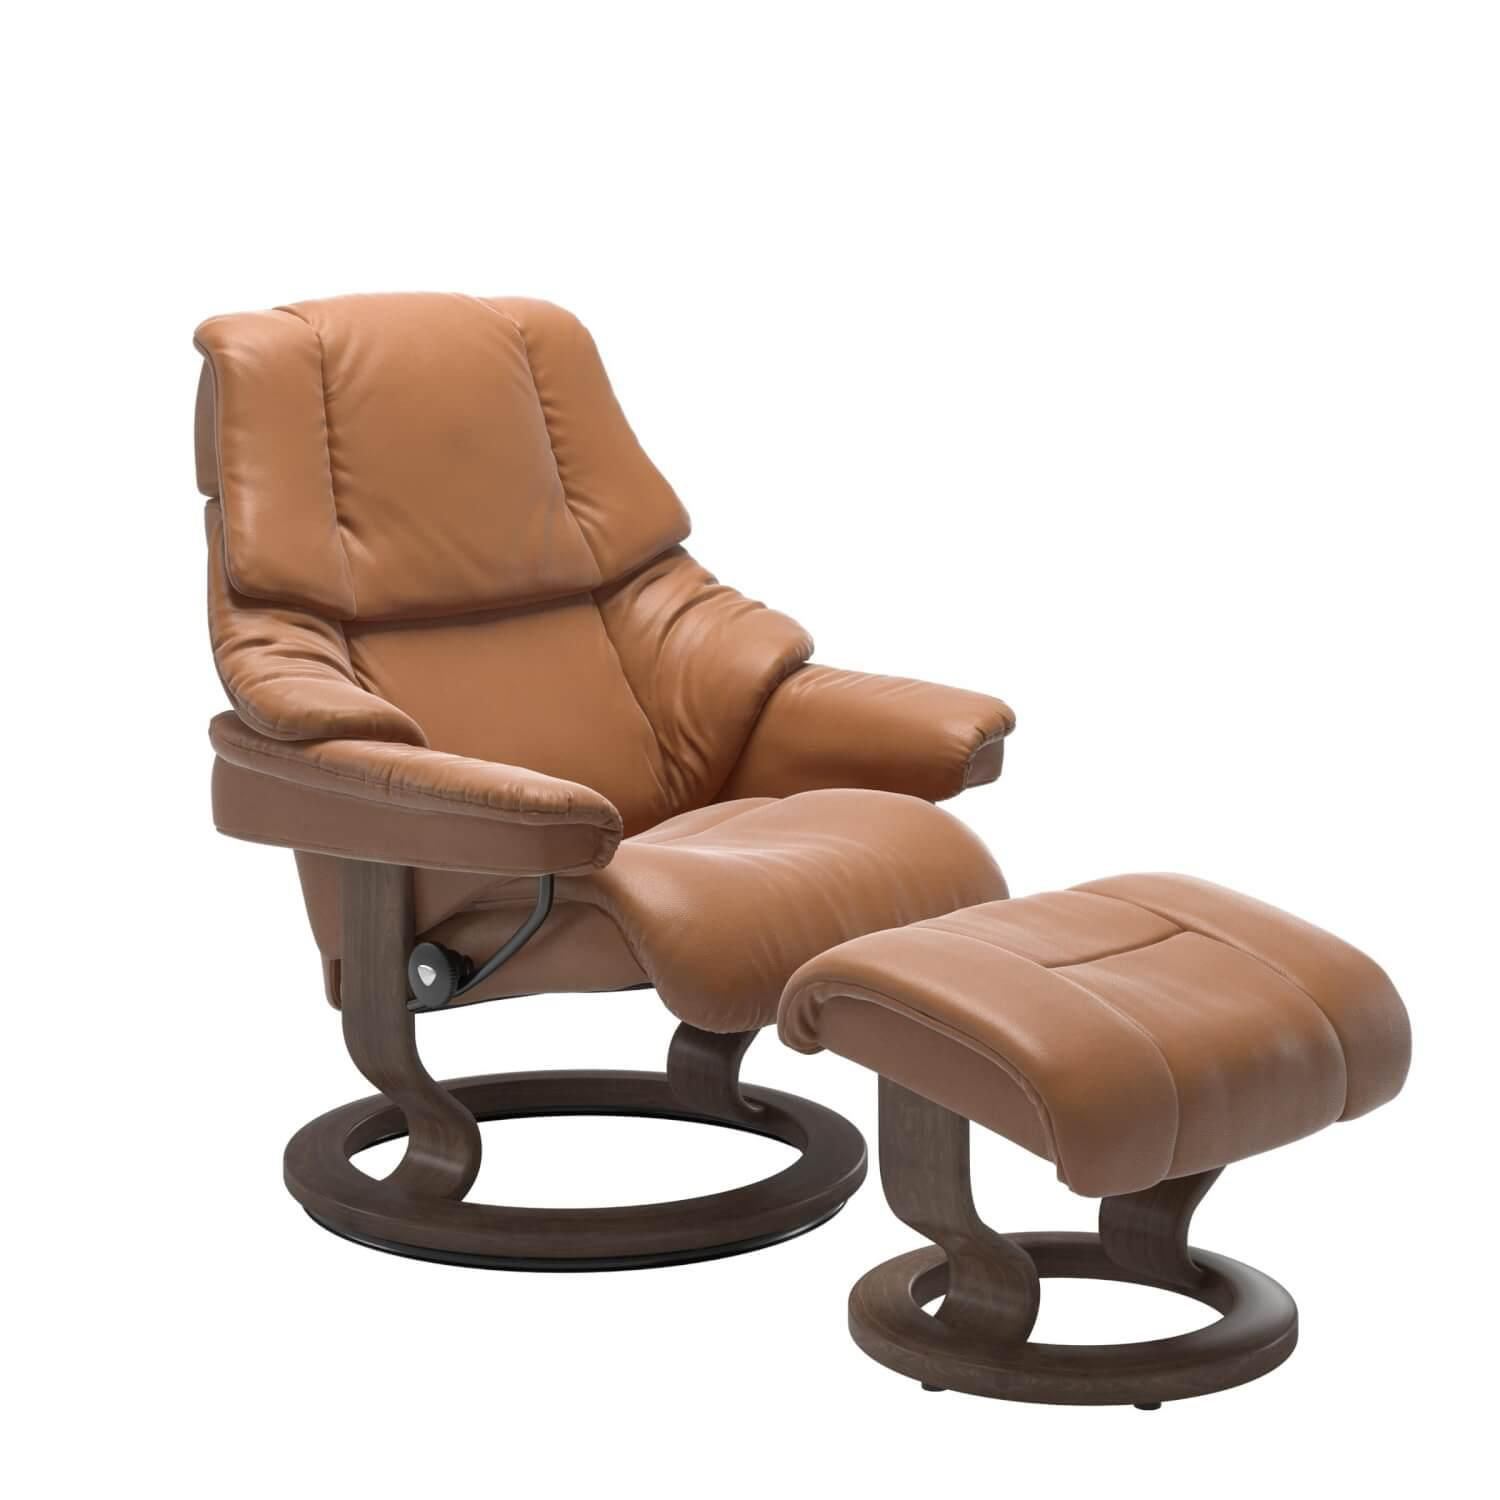 Stressless Reno M Classic Base Leder Cori Tan Mit Hocker